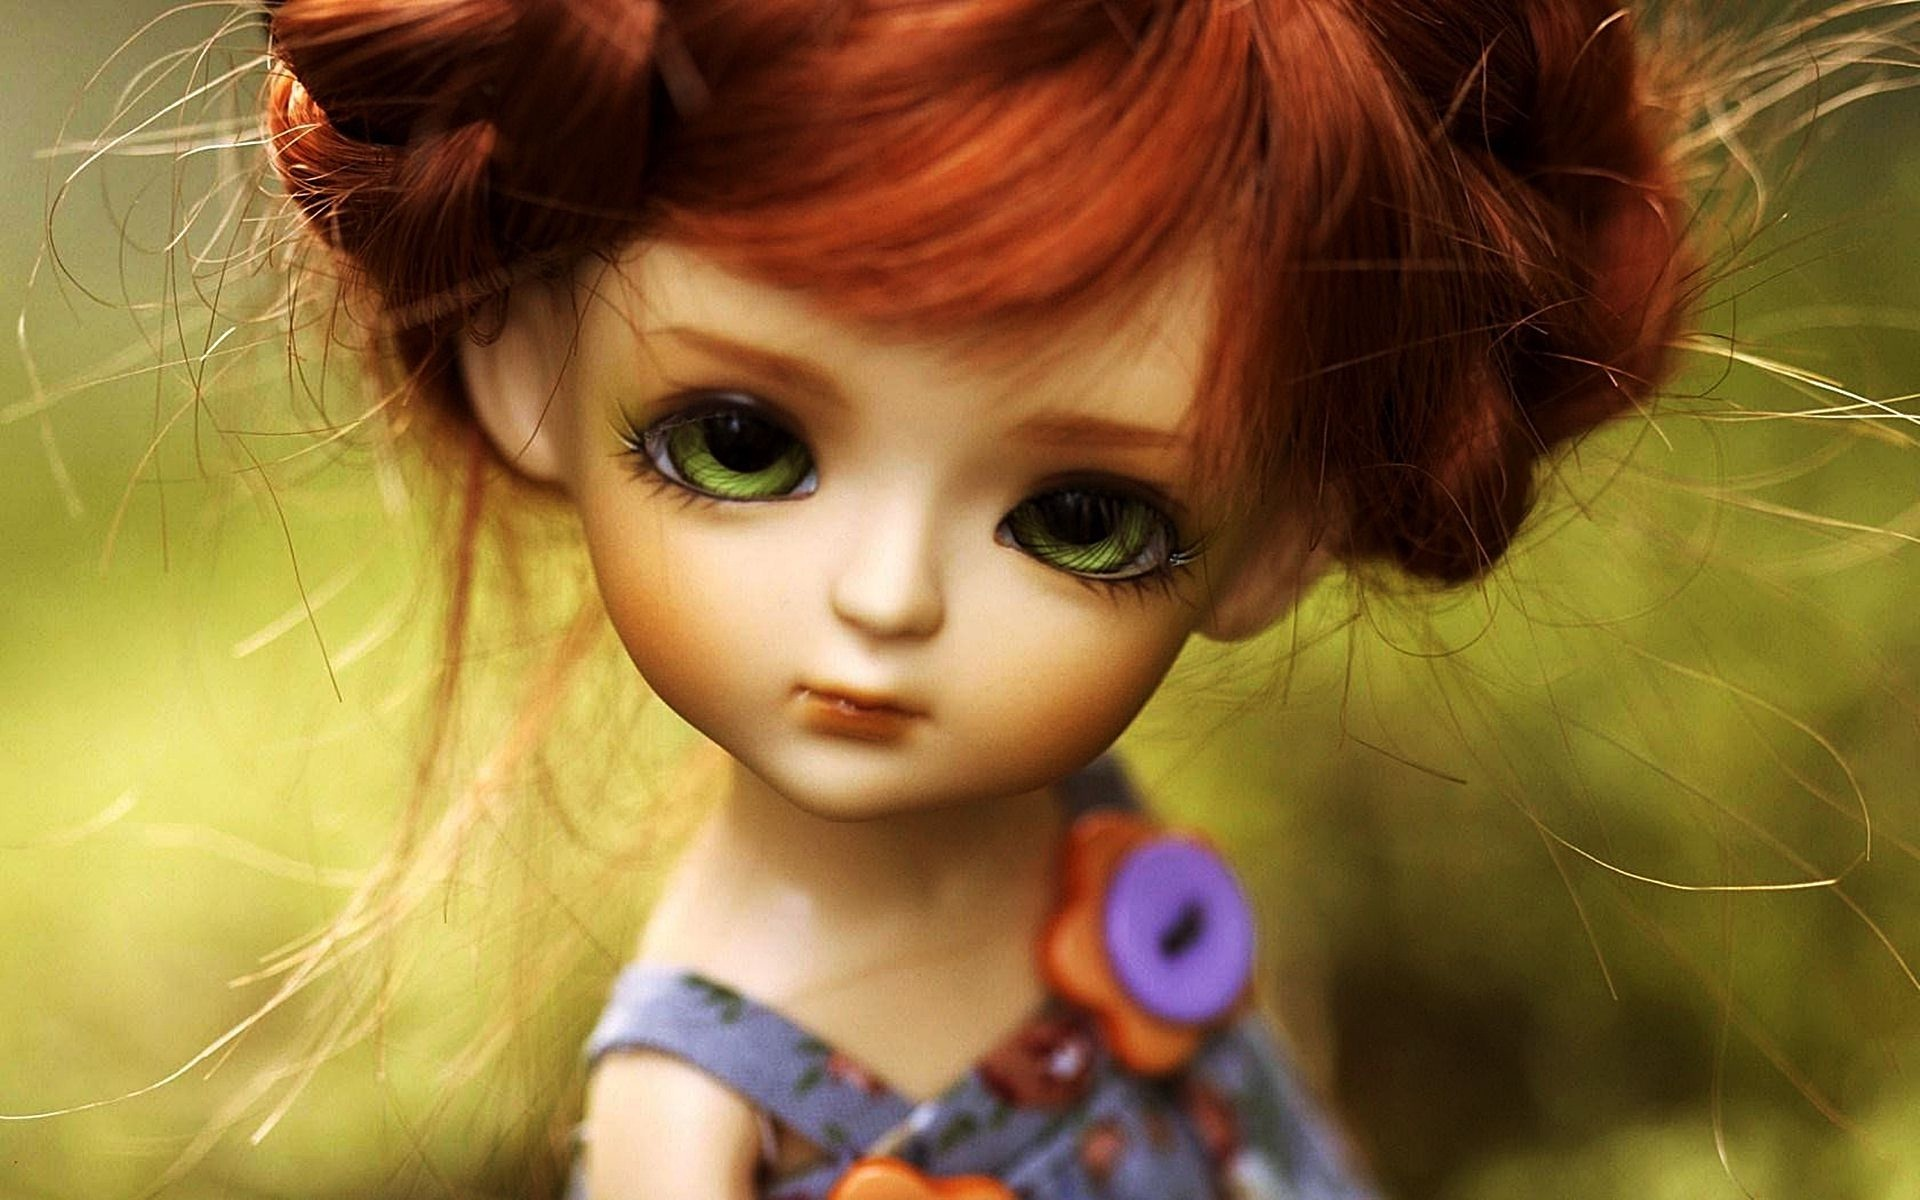 1920x1200 Innocent face cute doll new wallpapers | Beautiful hd .